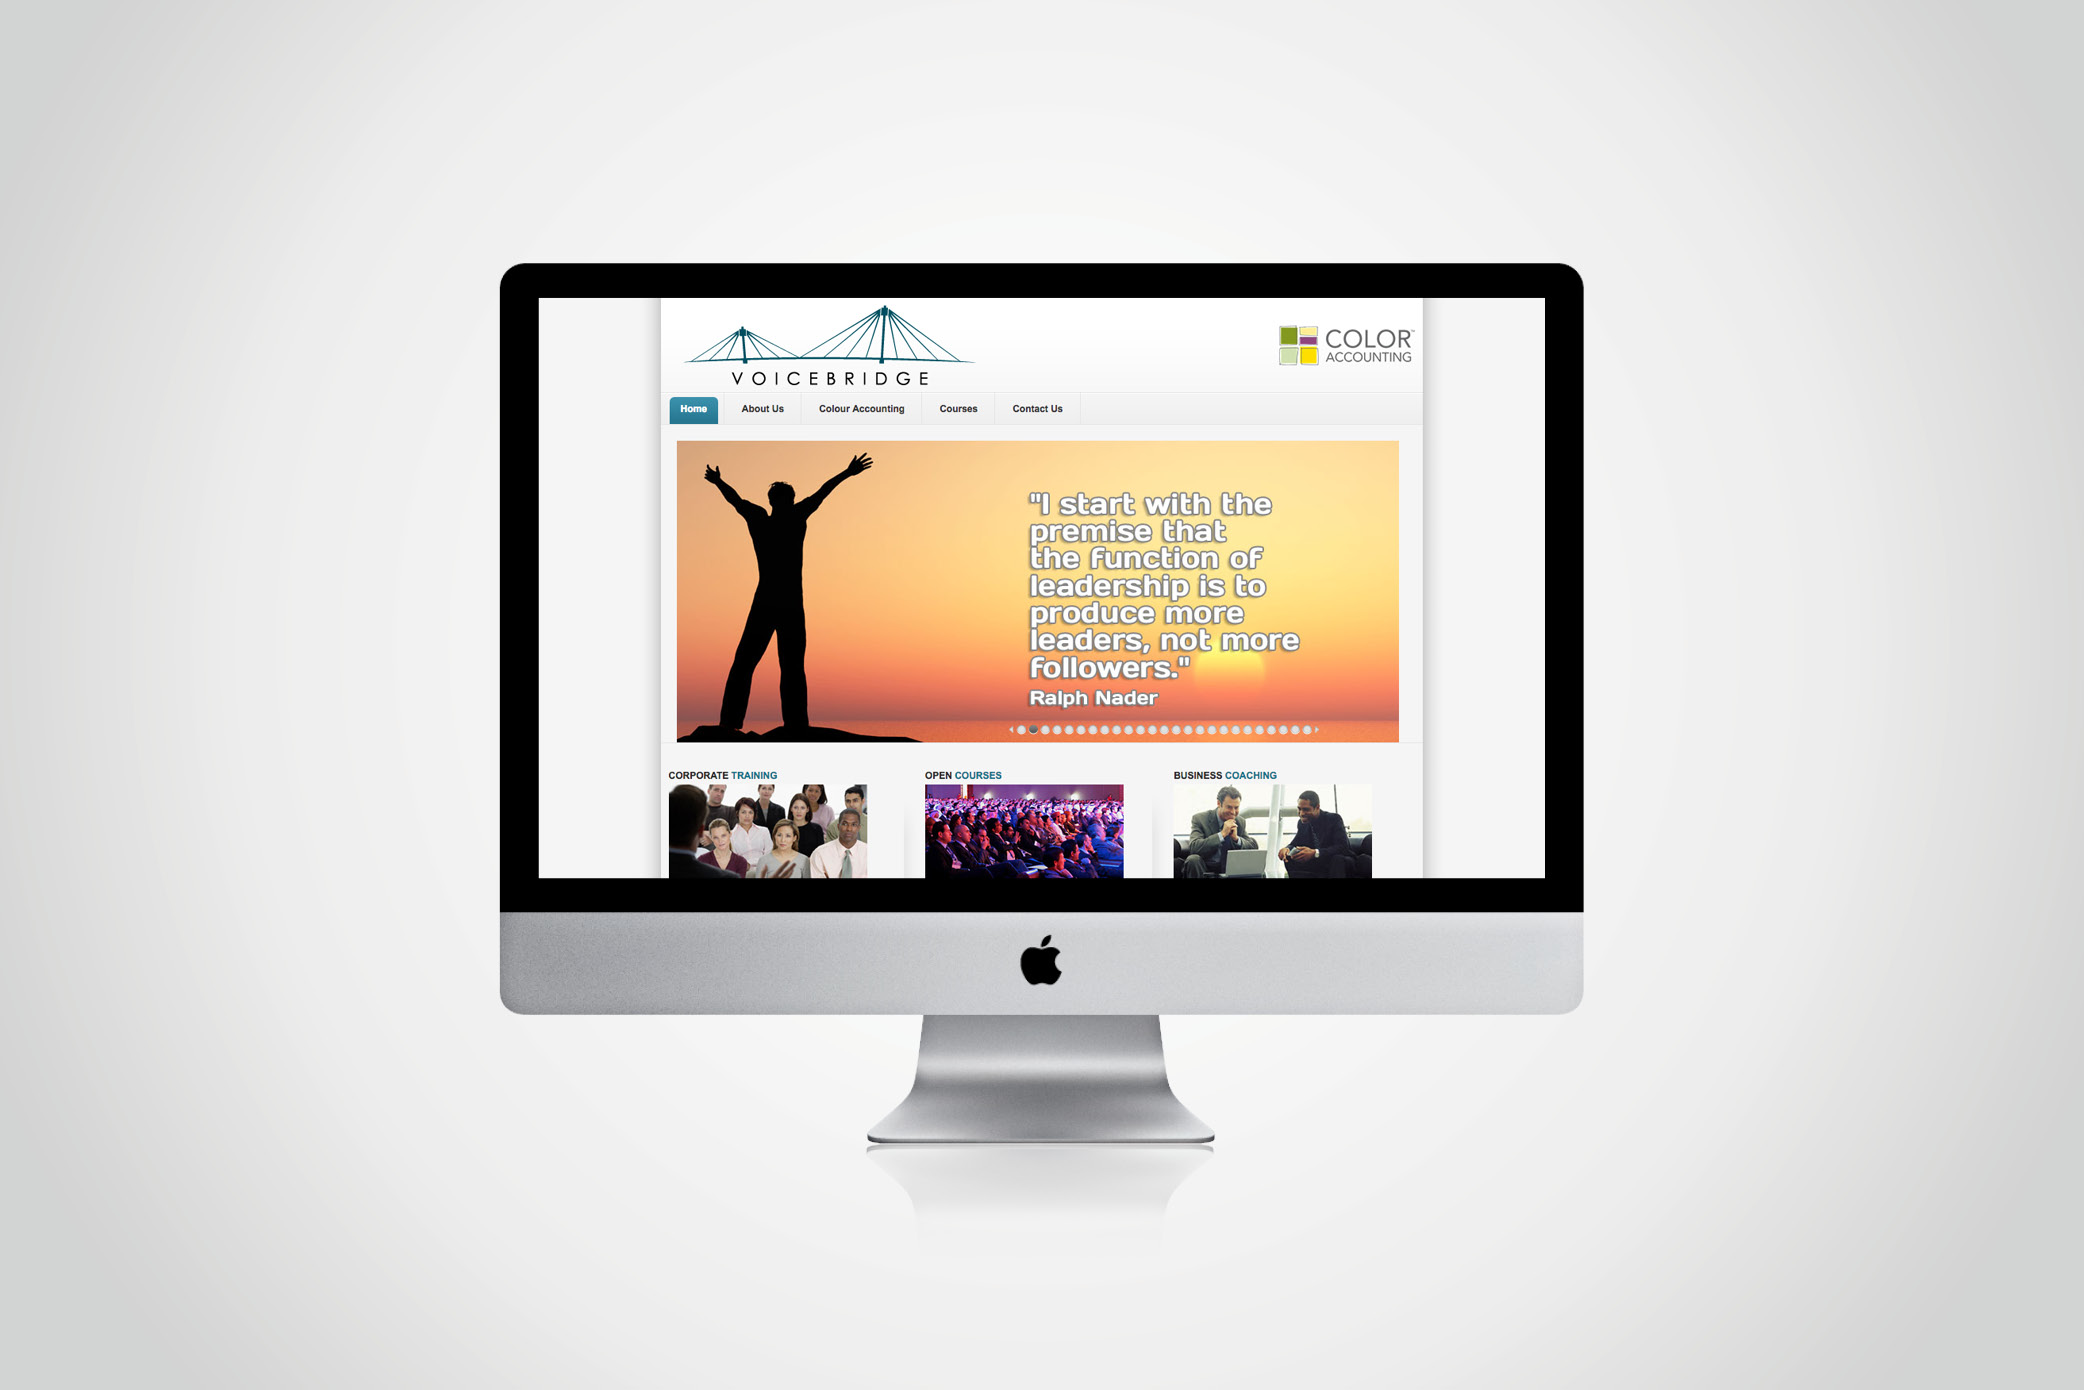 Voicebridge website